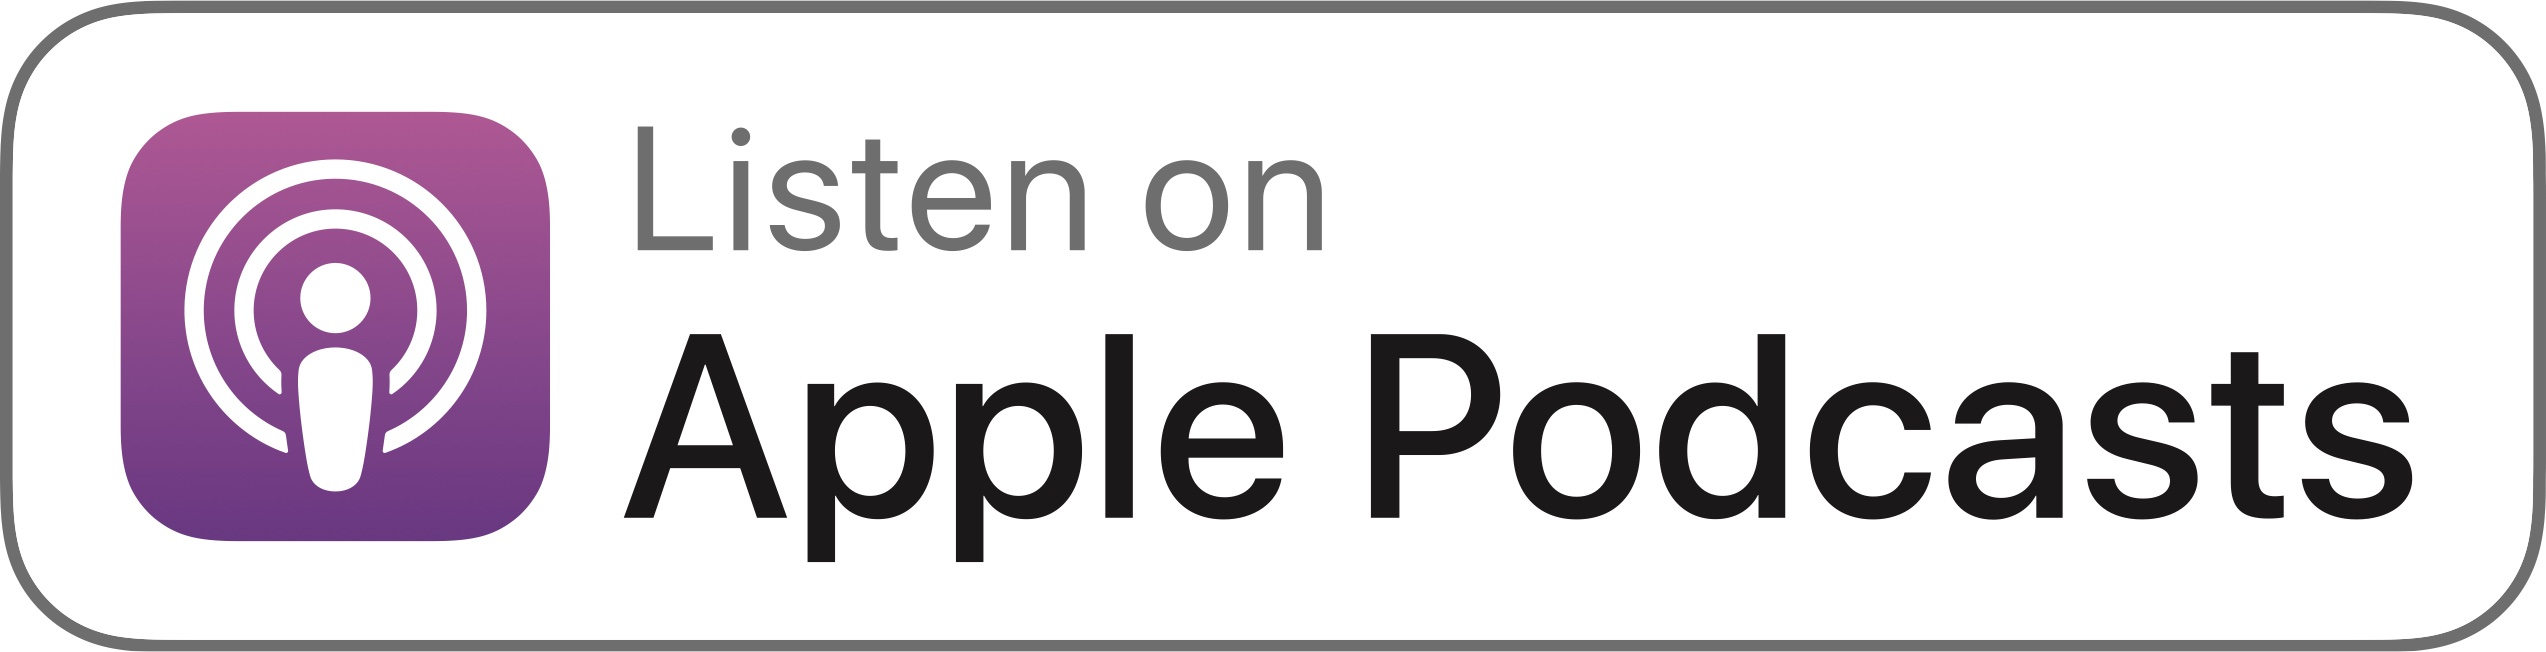 Listen-on-Apple-Podcasts-badge